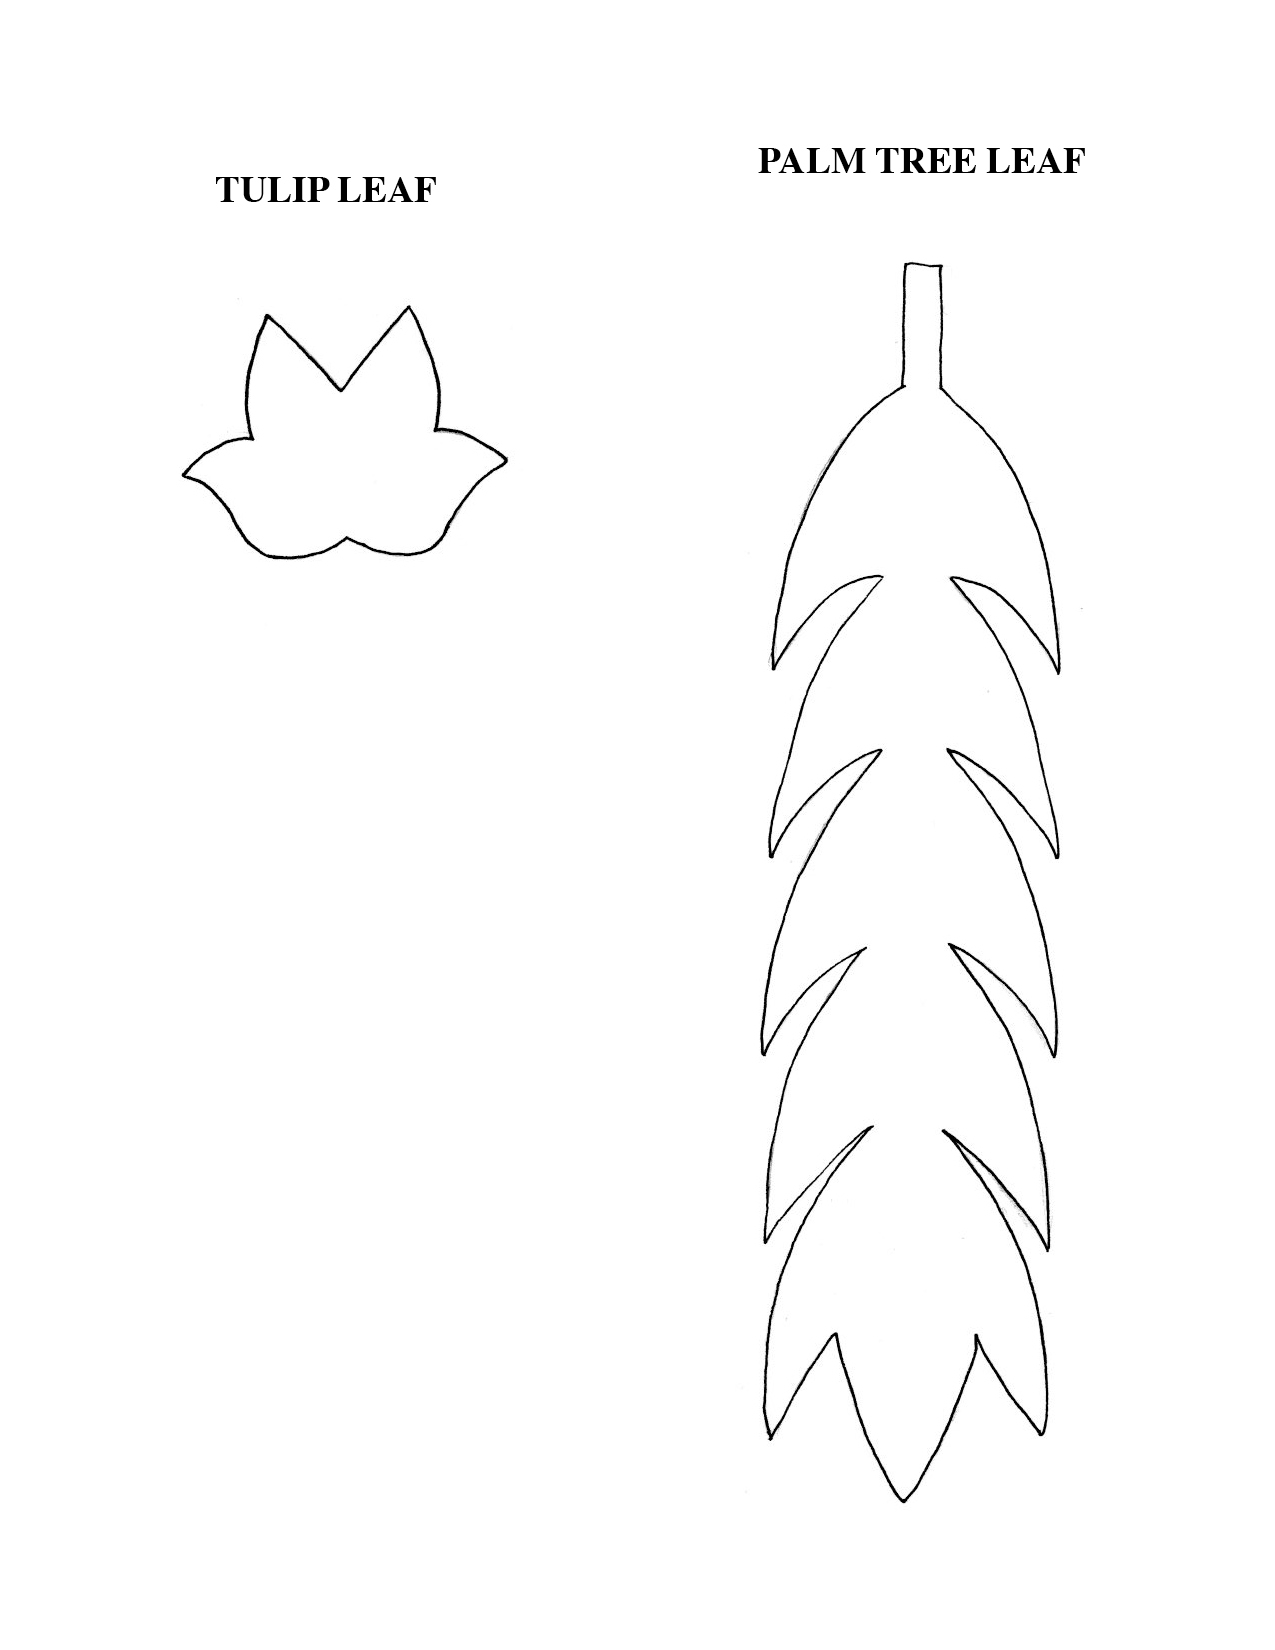 Photo: Pattern for tulip leaf and palm tree leaf.